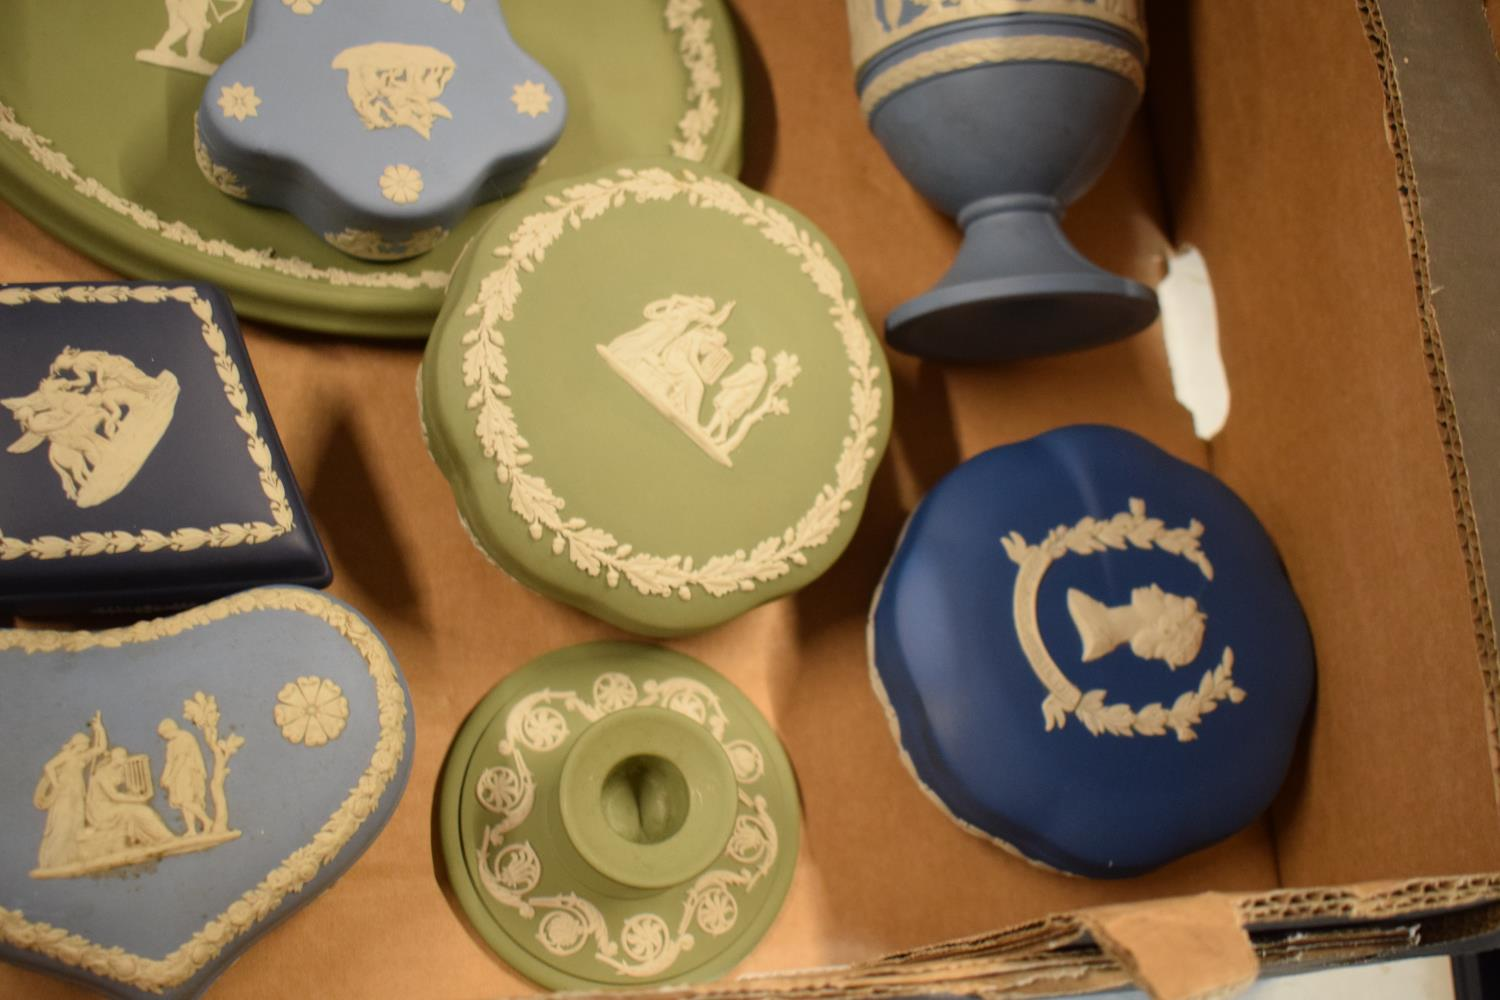 A collection of Wedgwood Jasperware to include vases, plates, trinkets etc in an array of colours to - Image 4 of 6